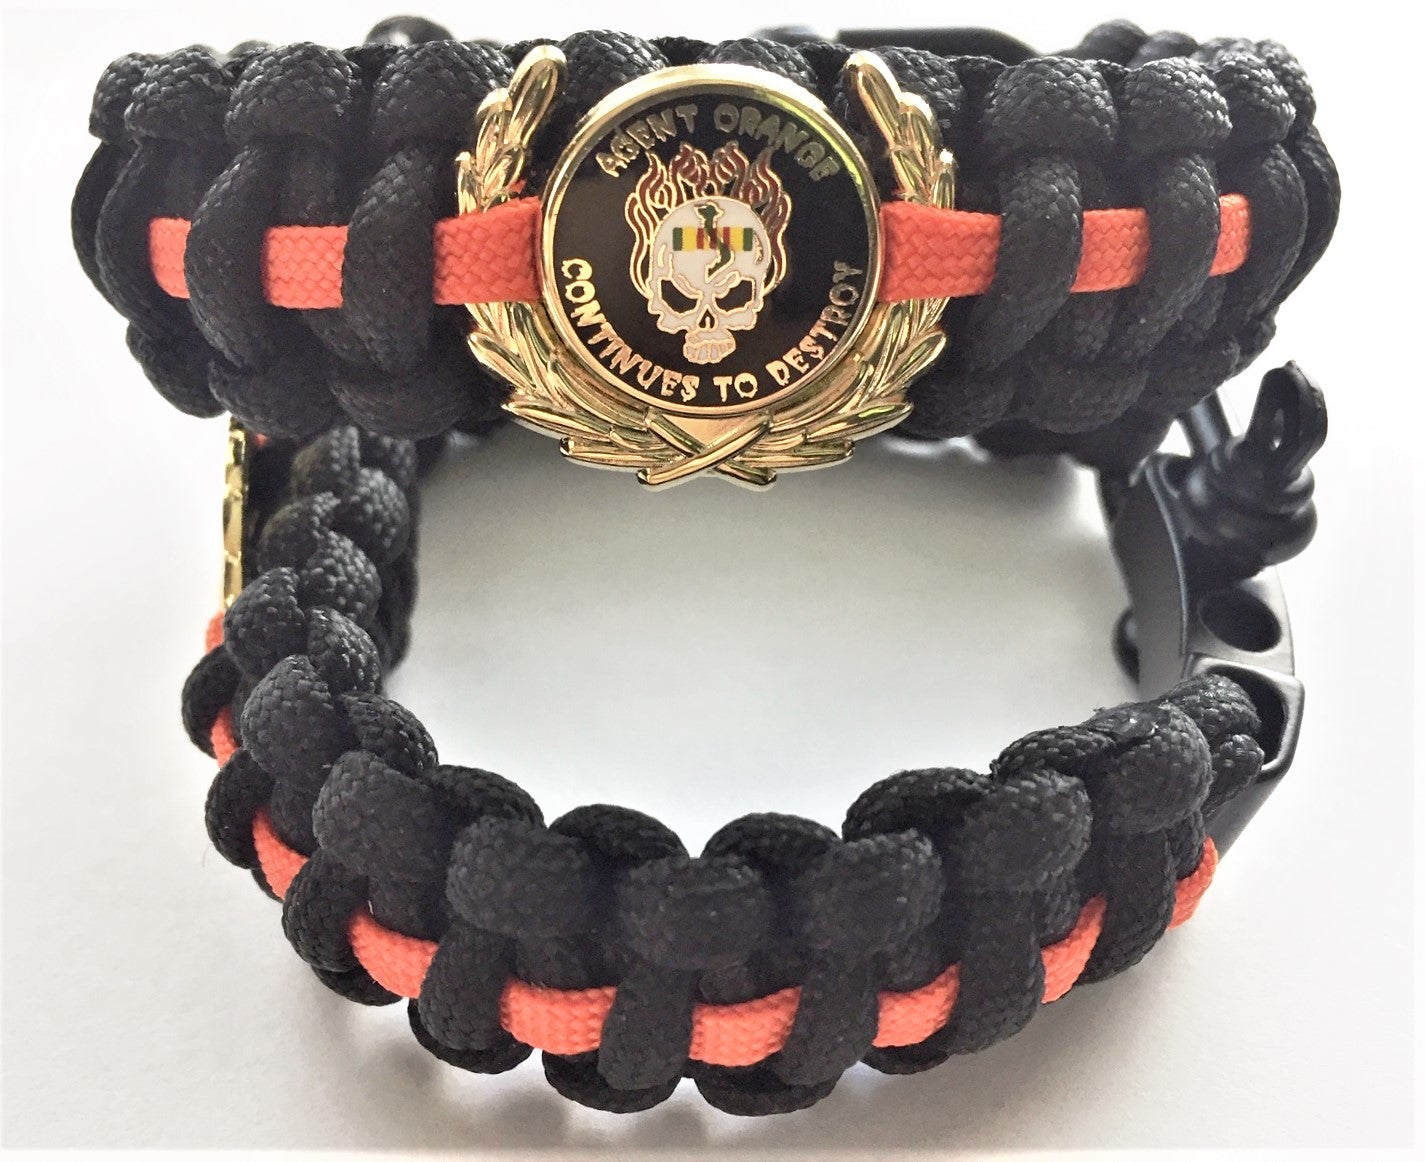 Image of Vietnam Veteran Agent Orange Para cord Bracelet with Continues To Destroy  Pin